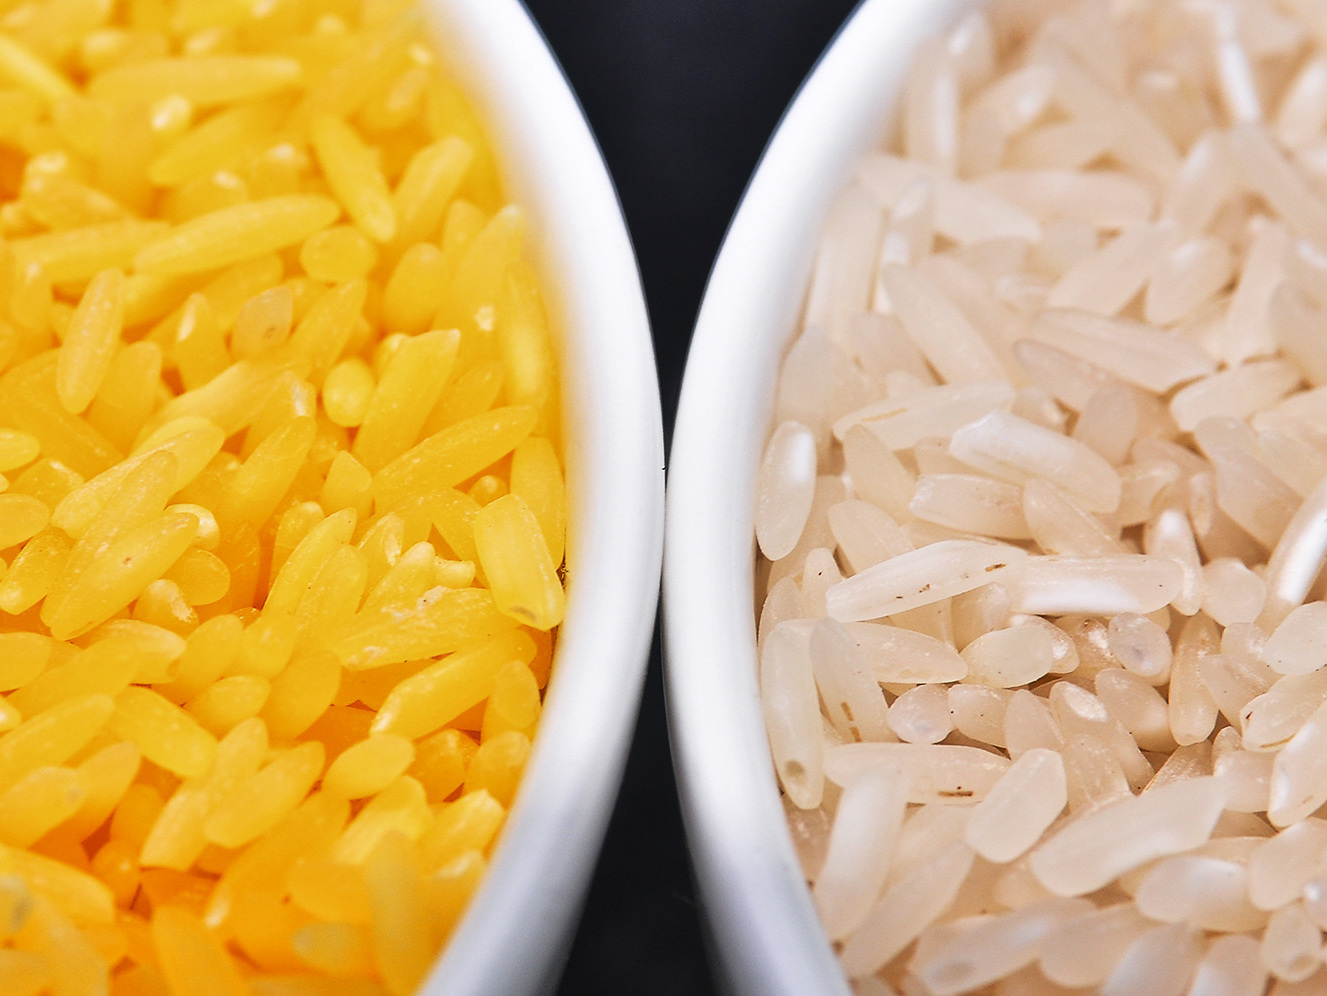 Golden Rice Study Violated Ethical Rules, Tufts Says